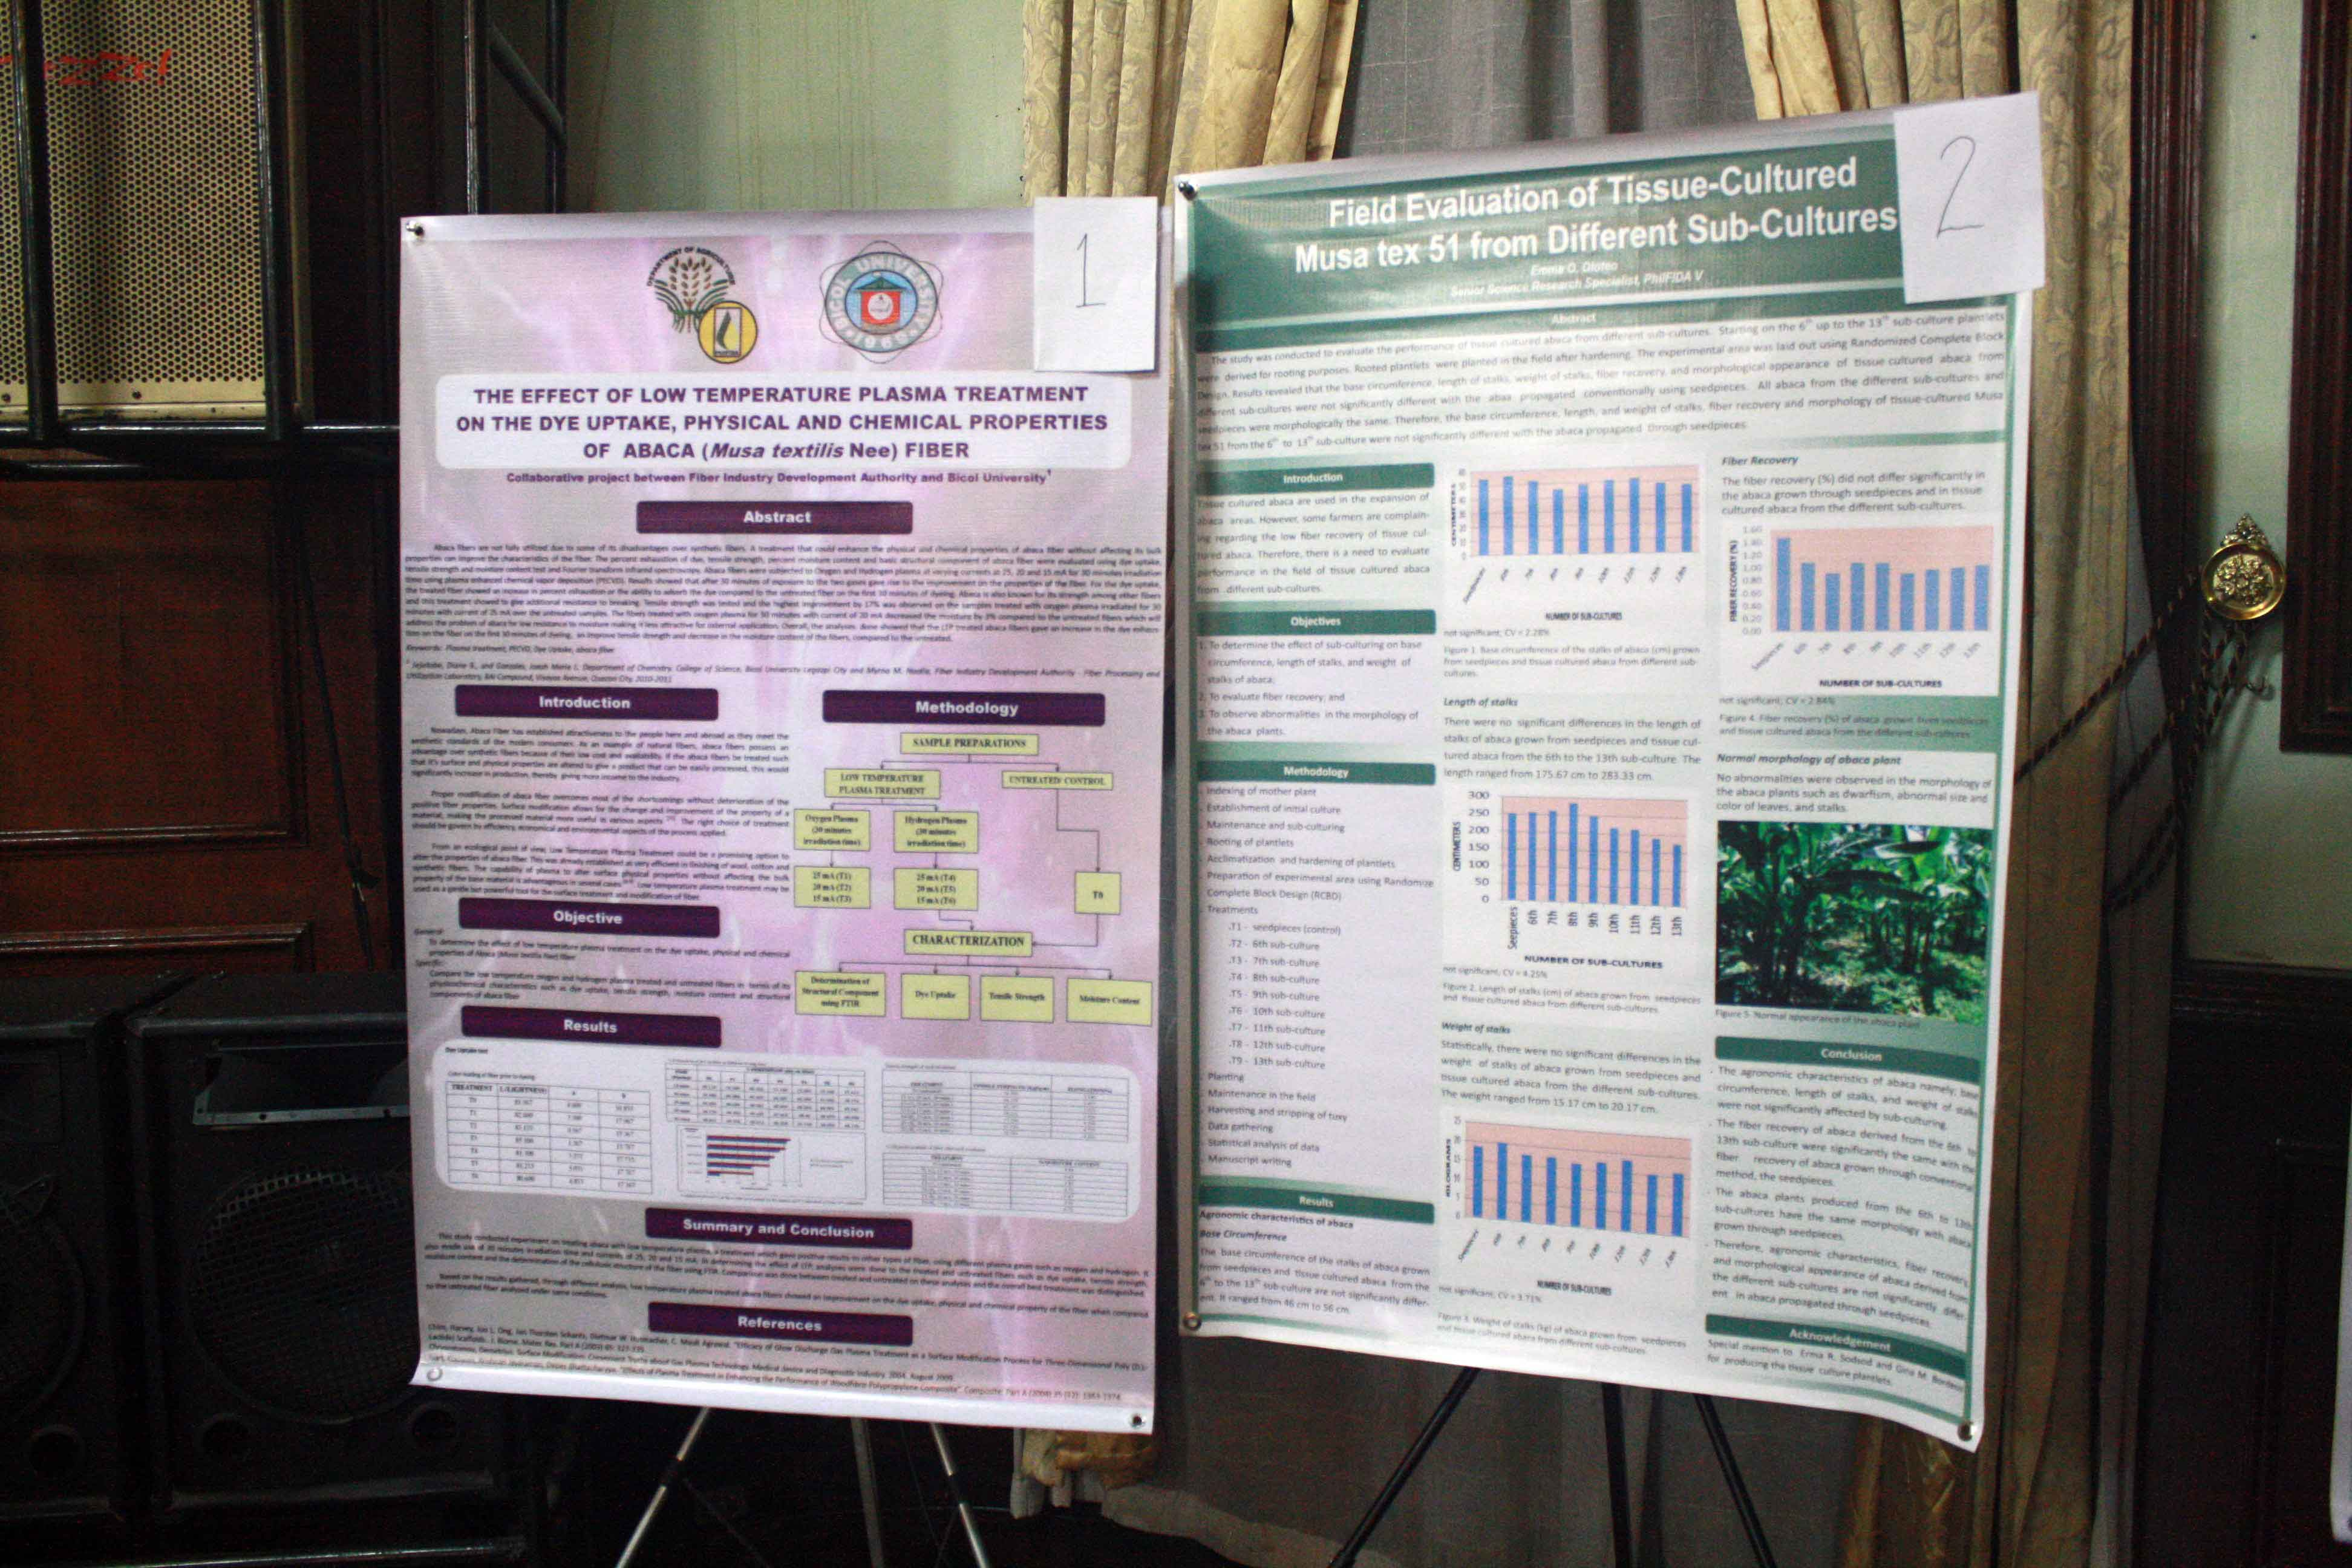 Results of the 2015 philfida in house research review